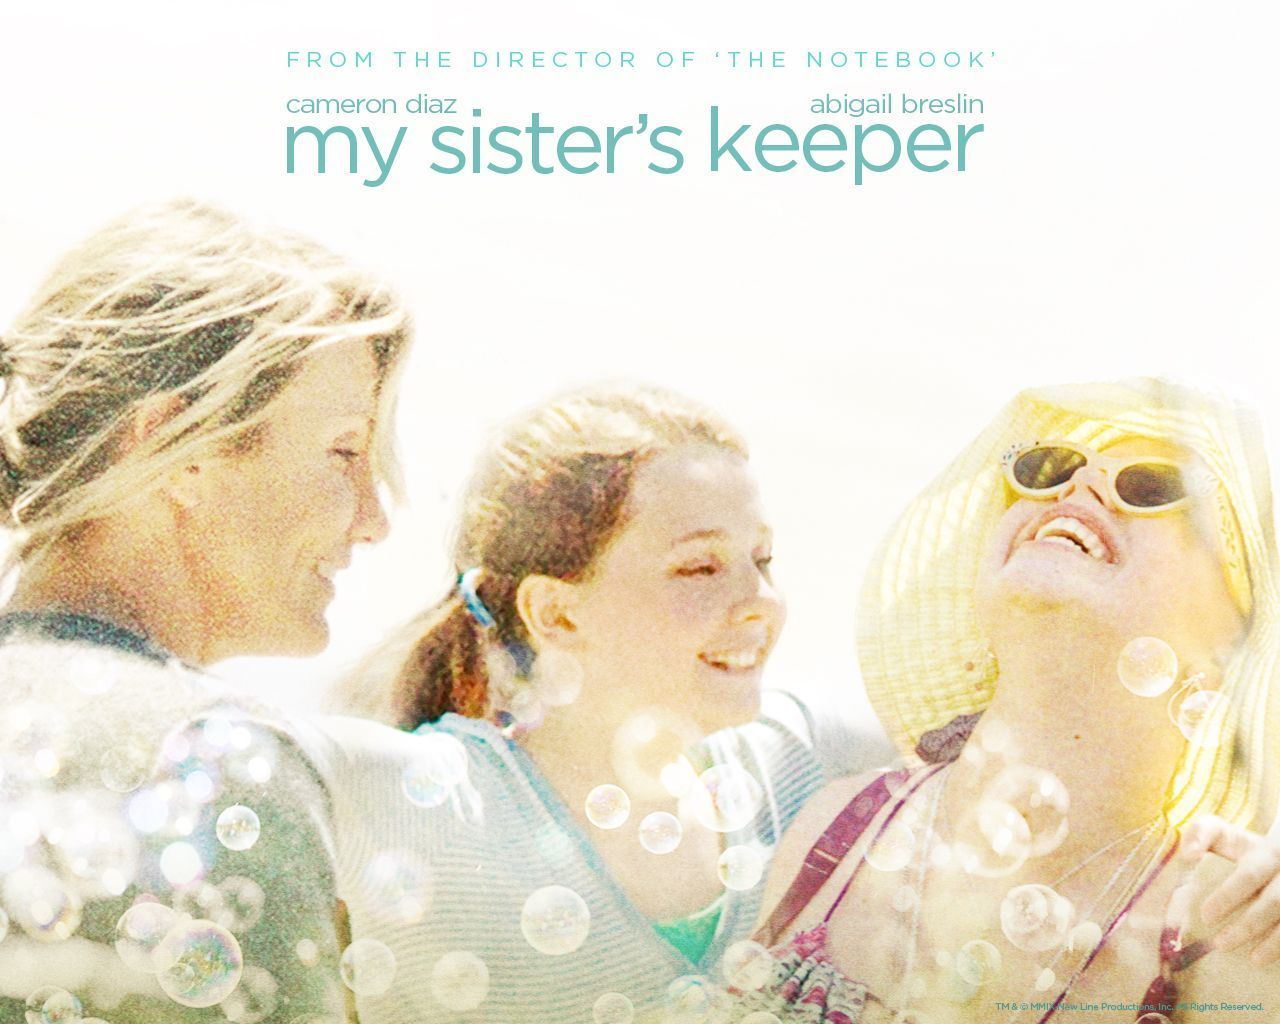 my sister s keeper Anna fitzgerald looks to earn medical emancipation from her parents who until now have relied on their youngest child to help their leukemia-stricken daughter kate remain alive.